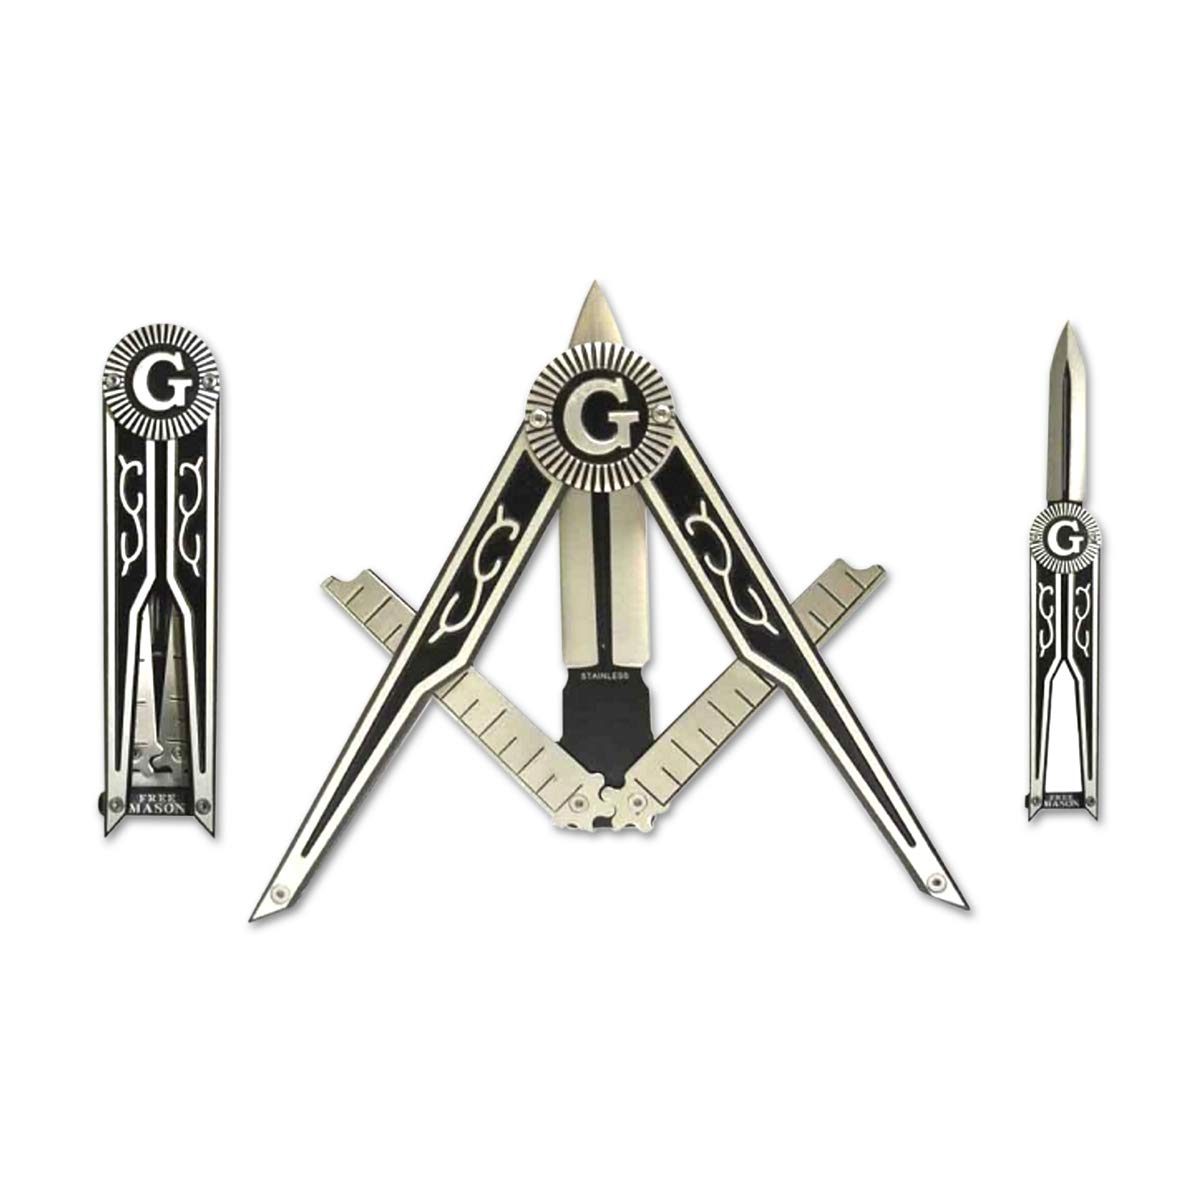 """Square & Compass with G Masonic Folding Knife - 3 1/4"""" Blade - 9"""" Overall"""